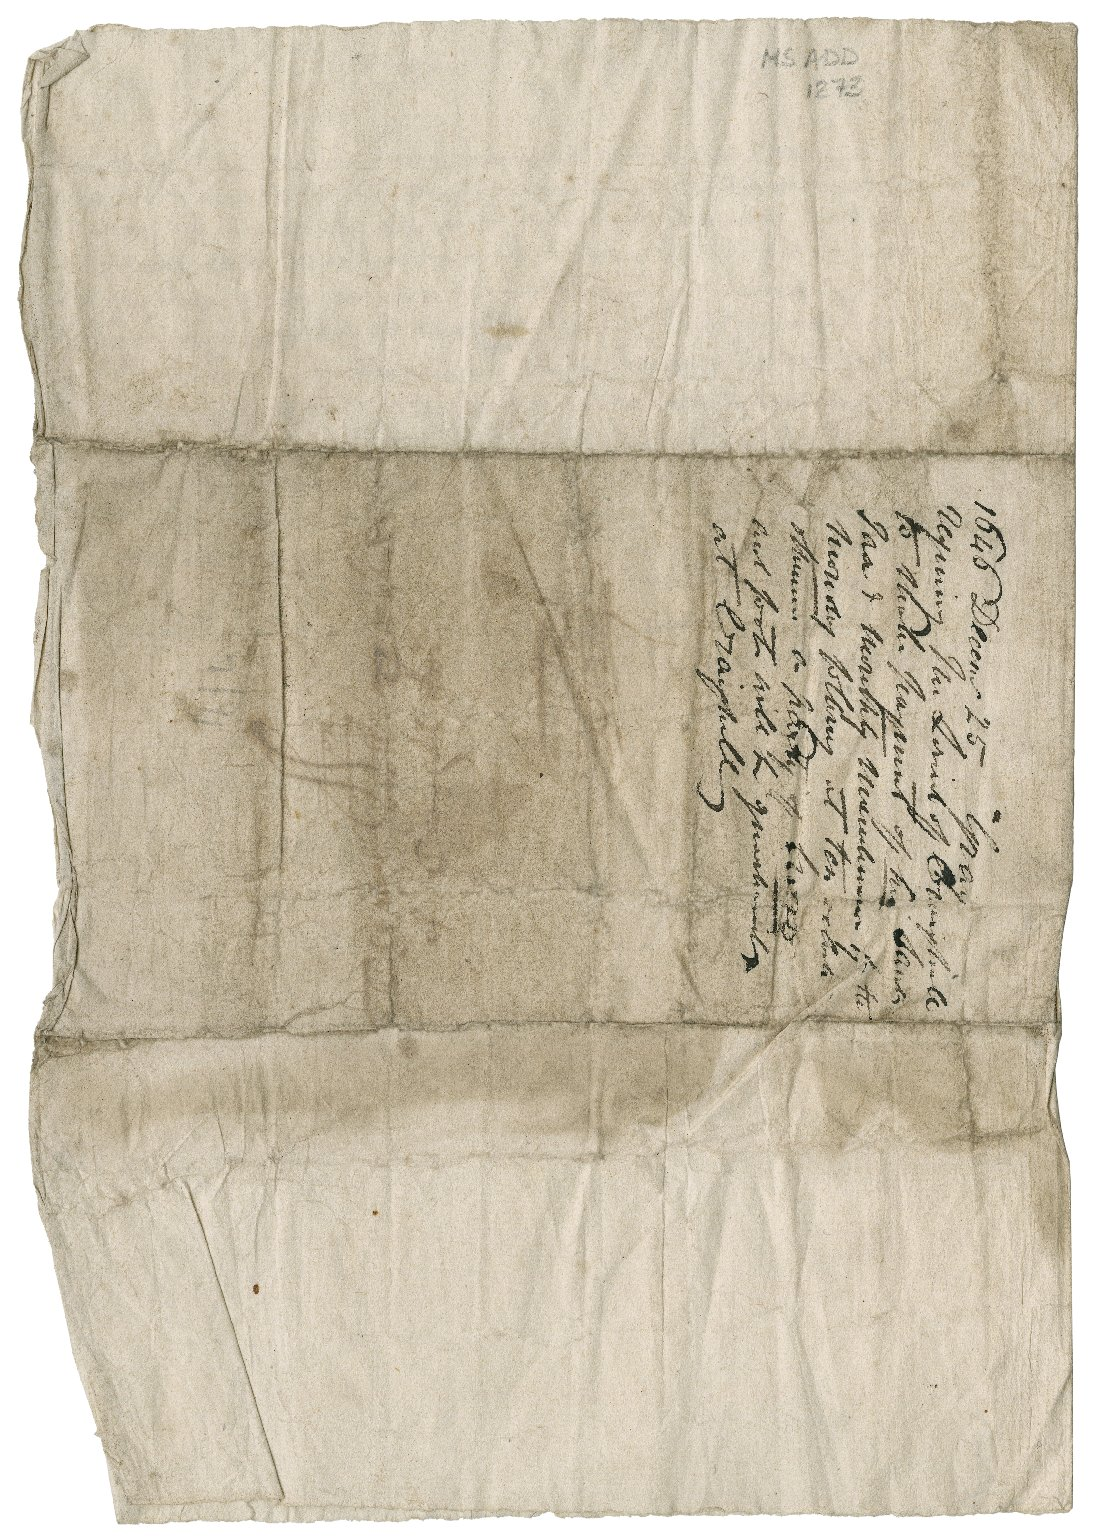 Letter from J. Gray to David Rattray of Craighall, Coupar Angus